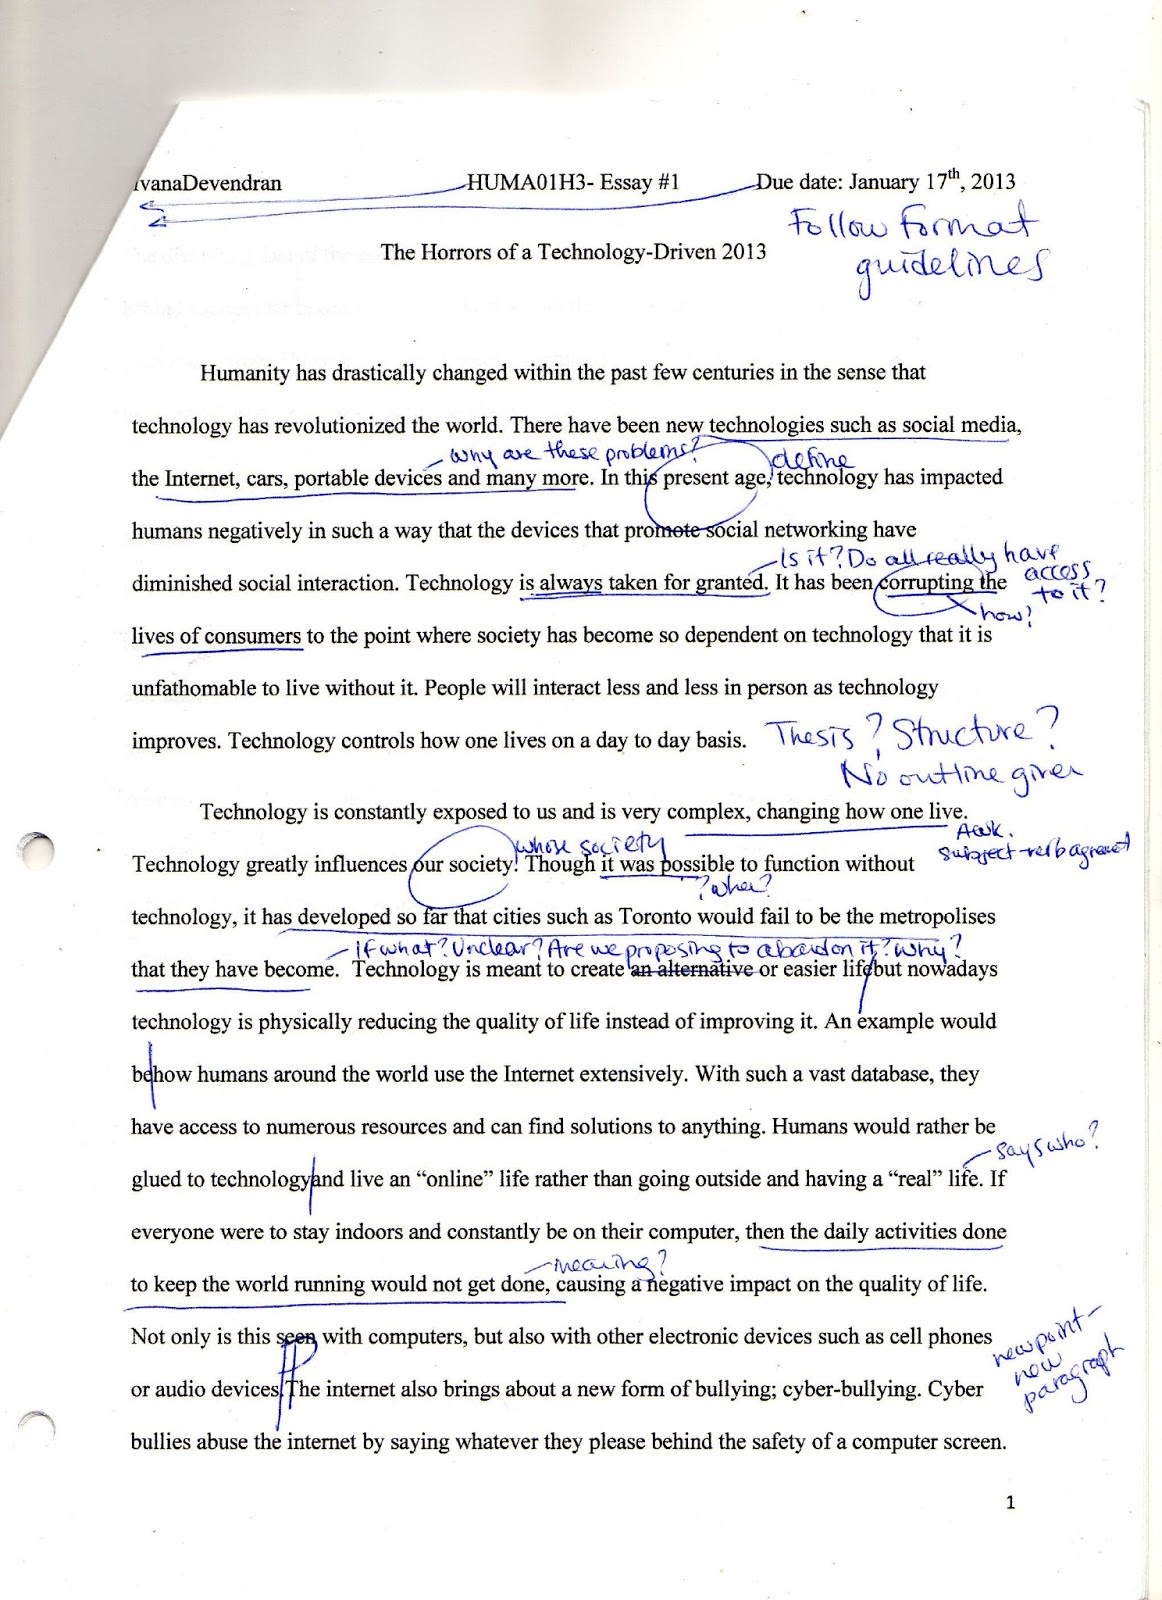 009 Img008 Essay Example Alcoholism Cause And Fearsome Effect Full